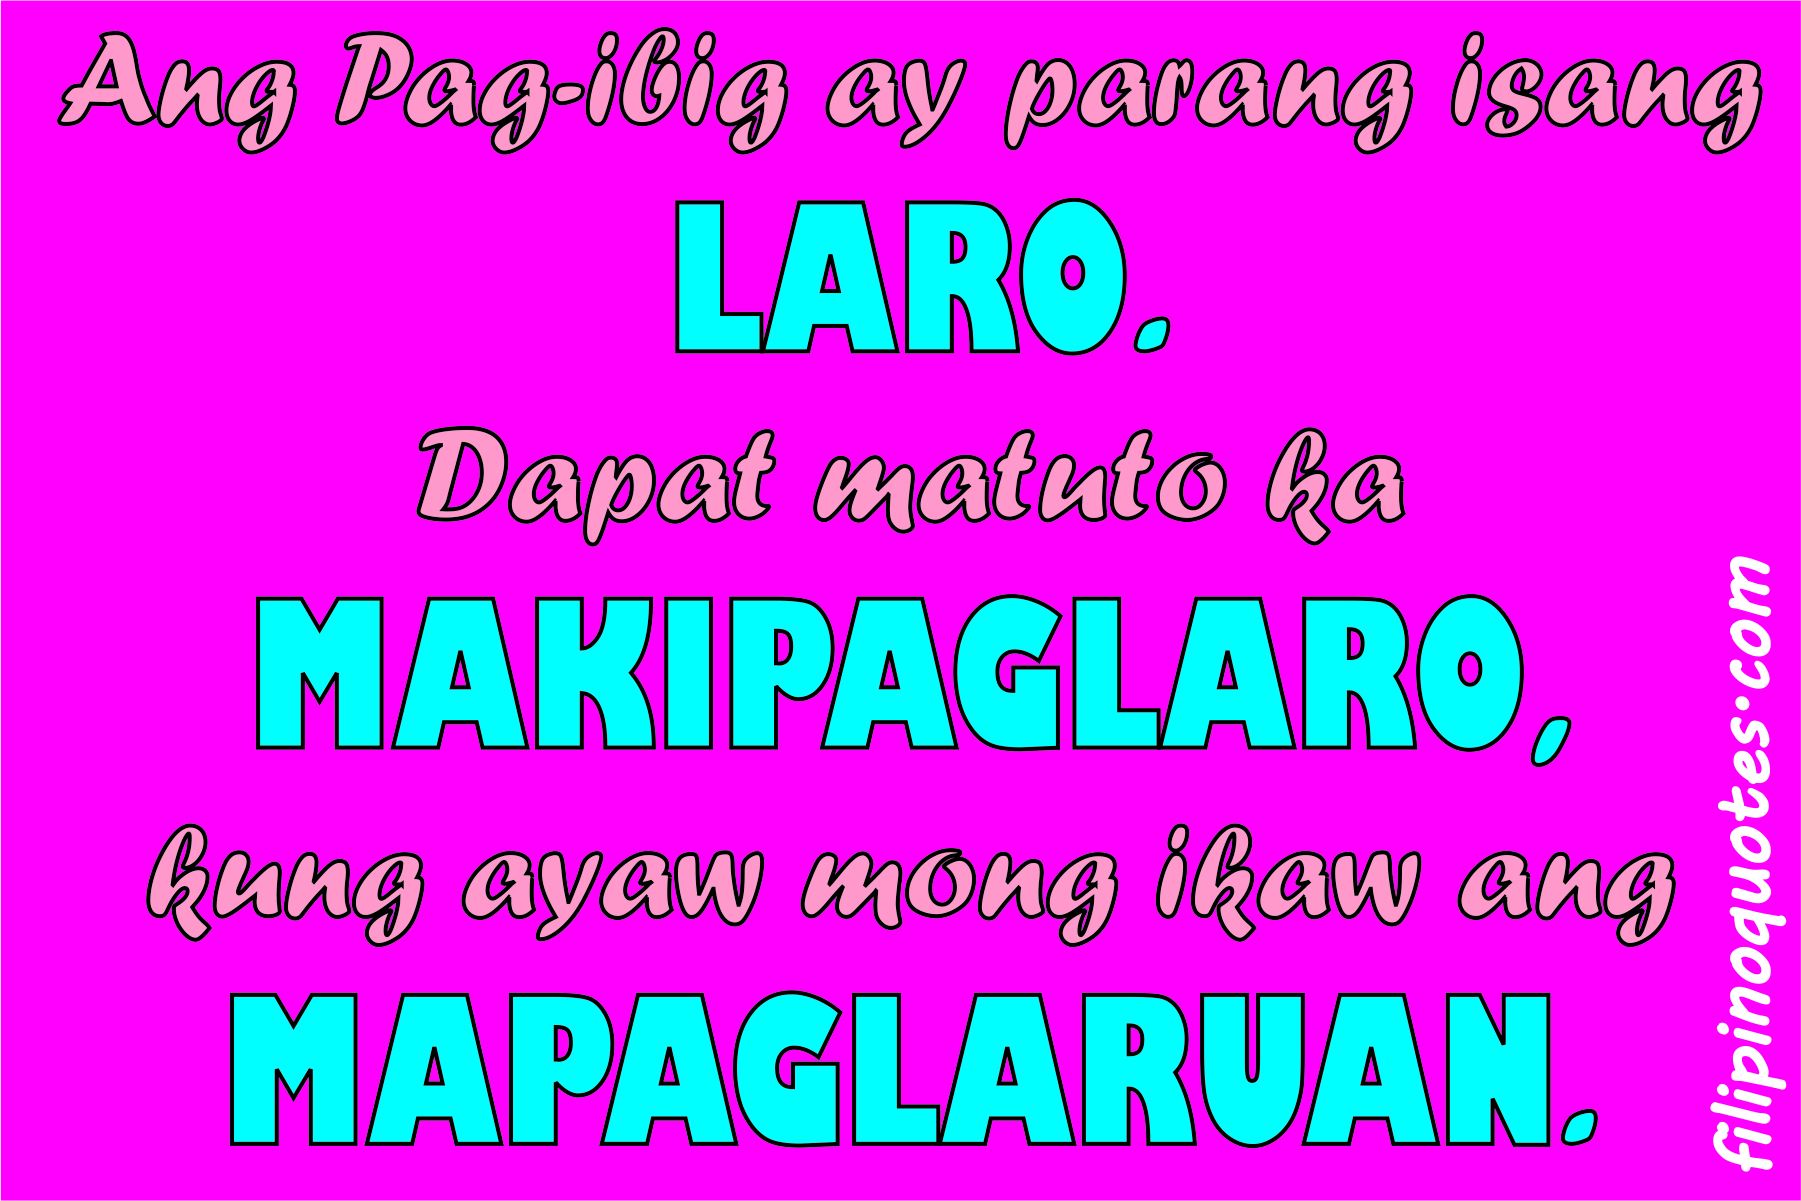 Tagalog Love Quotes Quotes About Love 2016 Tagalog  Dobre For